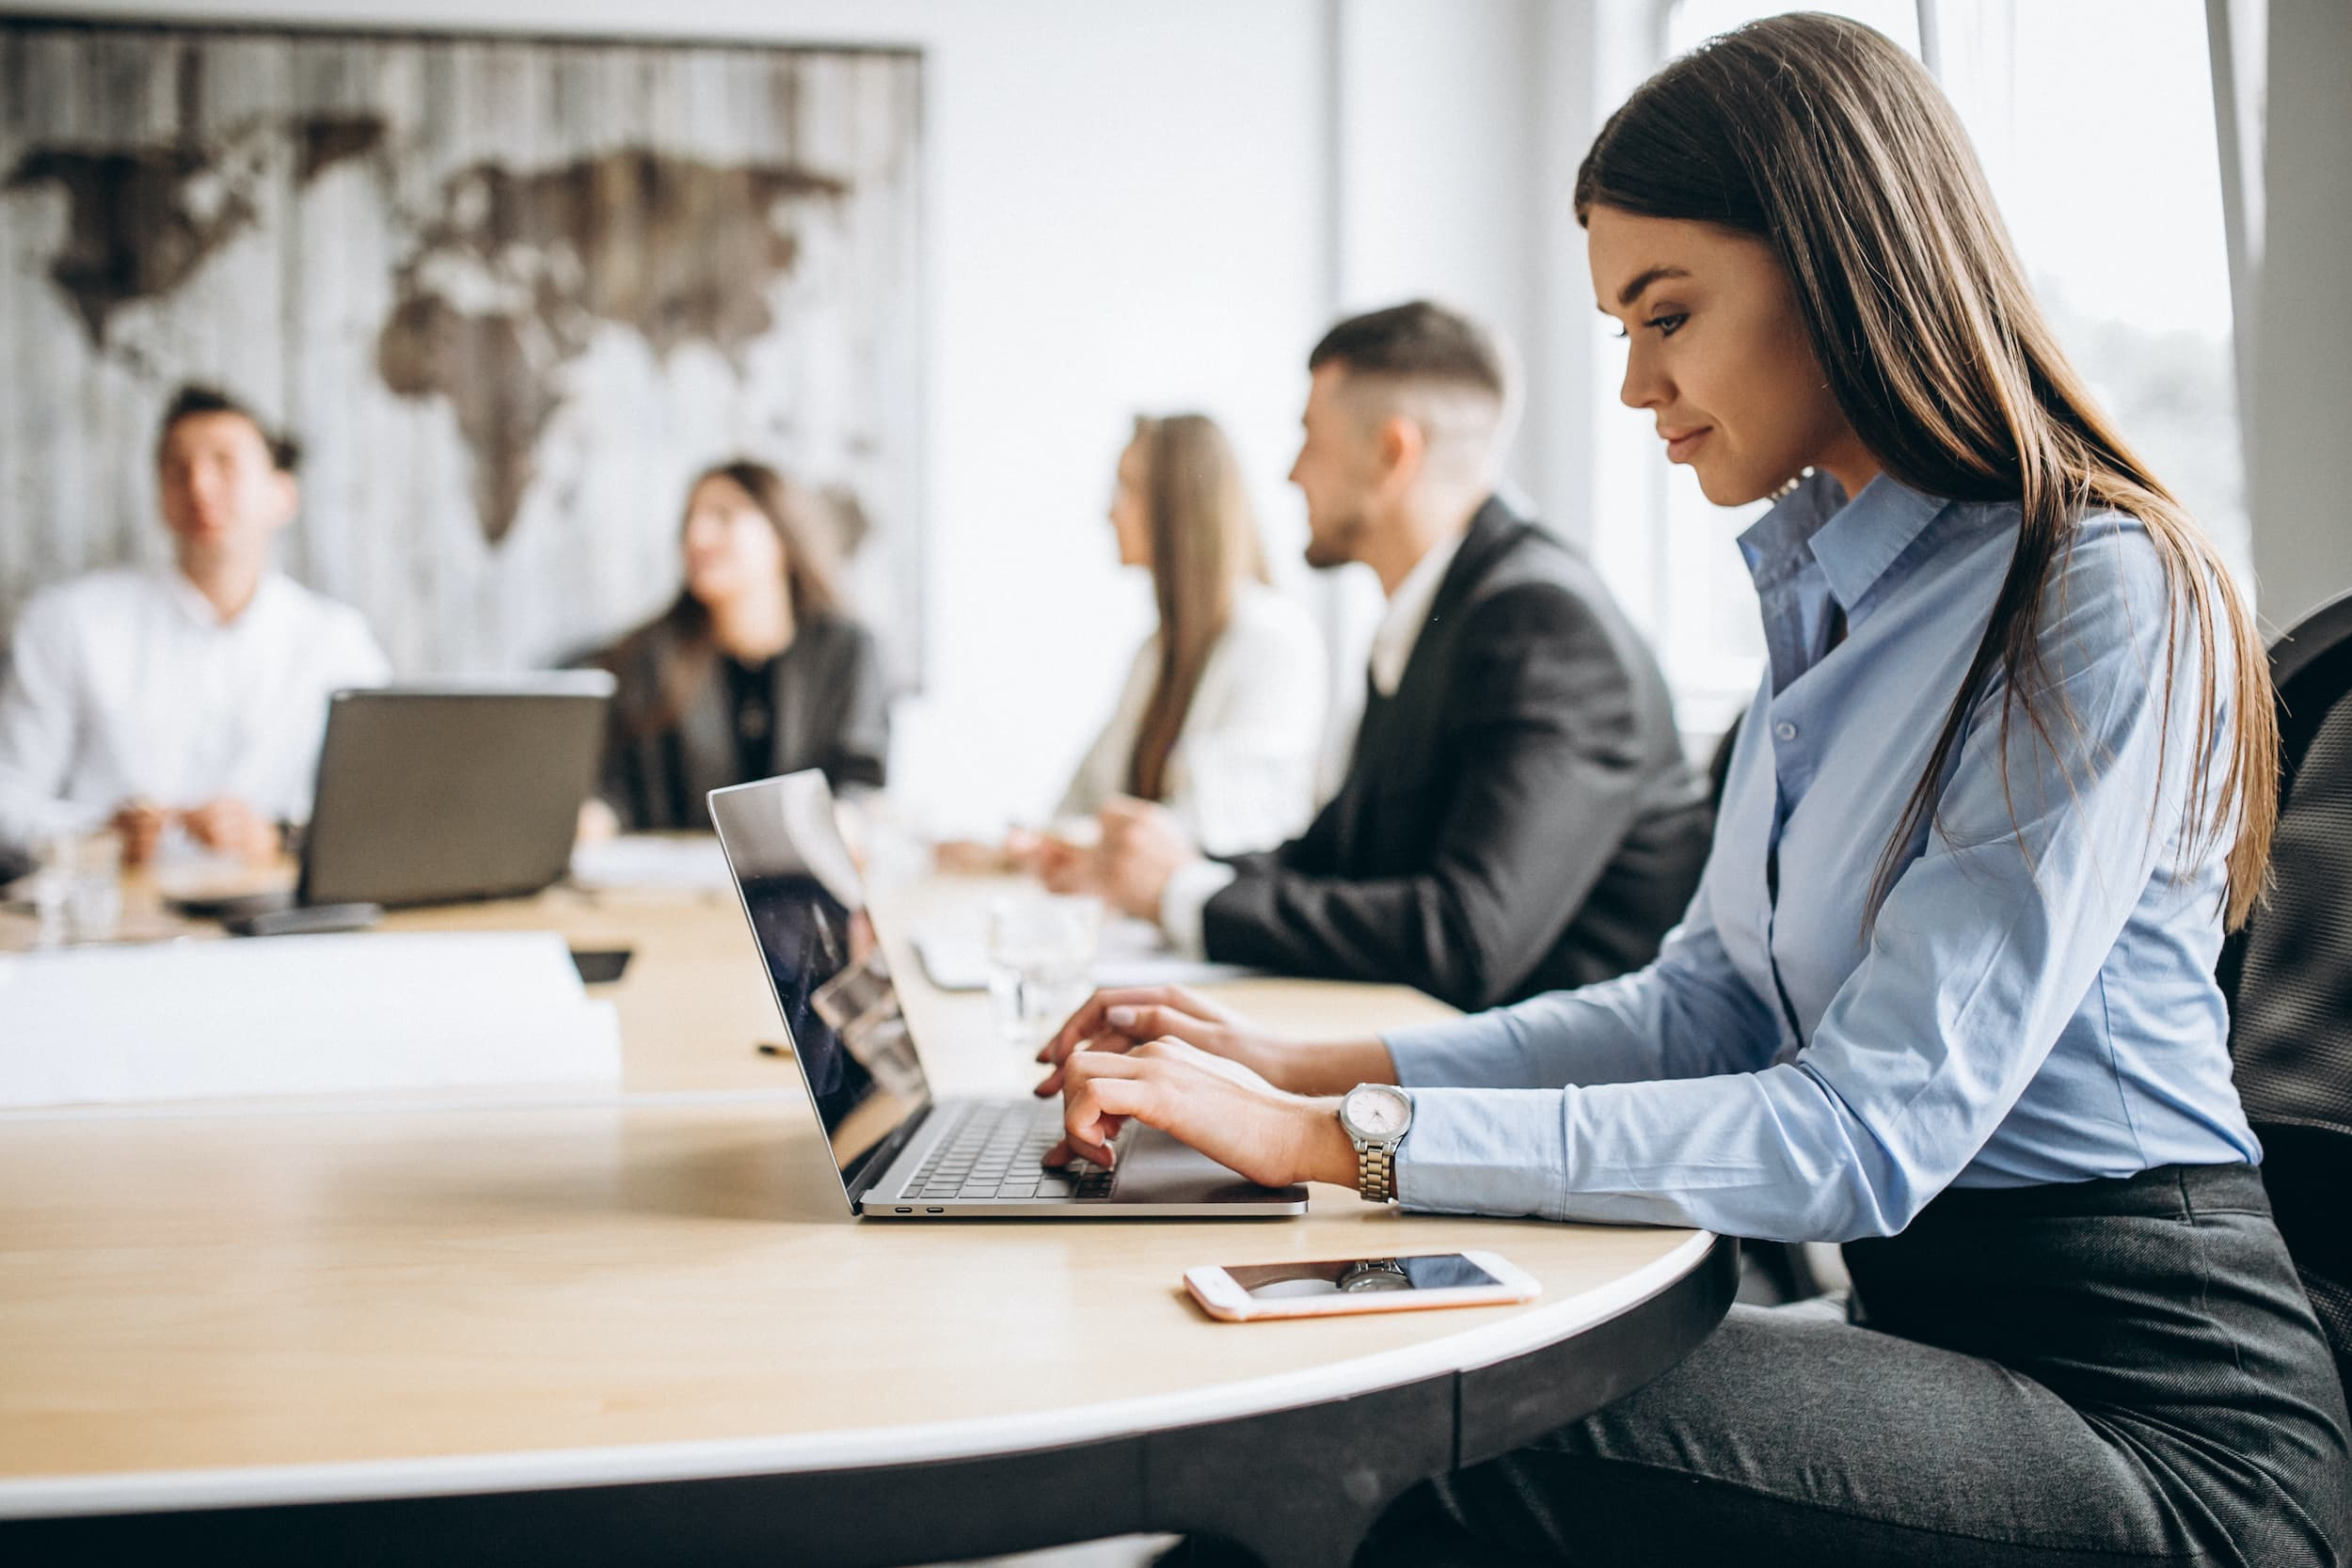 Female employee in office using laptop at table